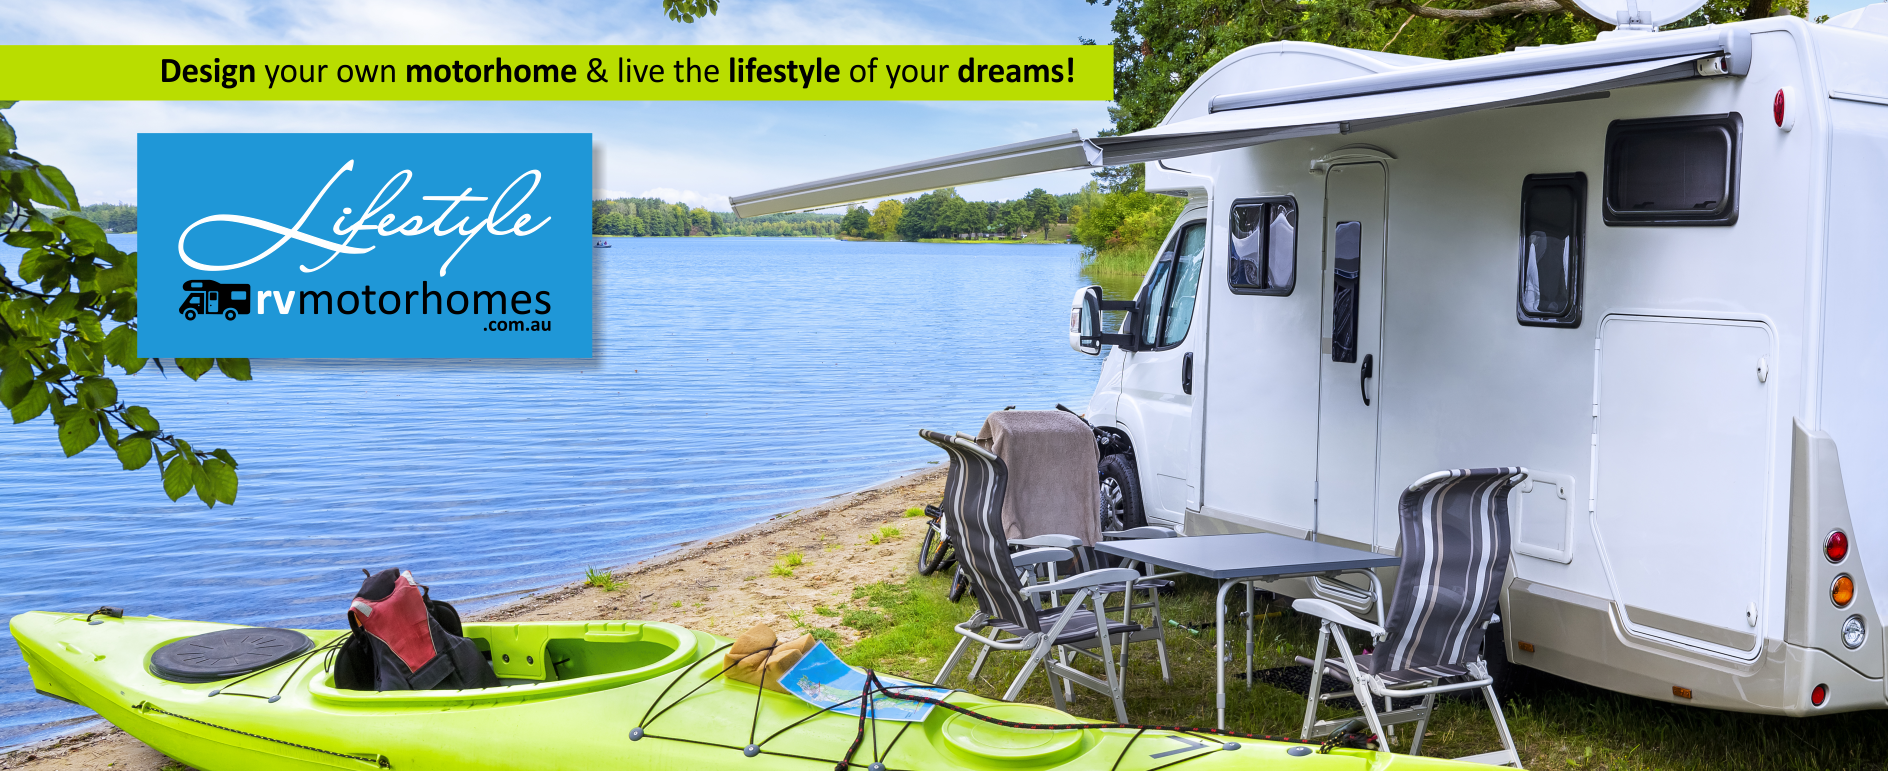 Lifestyle RV Motorhomes, Motorhome, Motorhome Conversions, Luxury, Custom Built, Lifestyle Motorhomes Conversions, Queensland, Brisbane, Hervey Bay